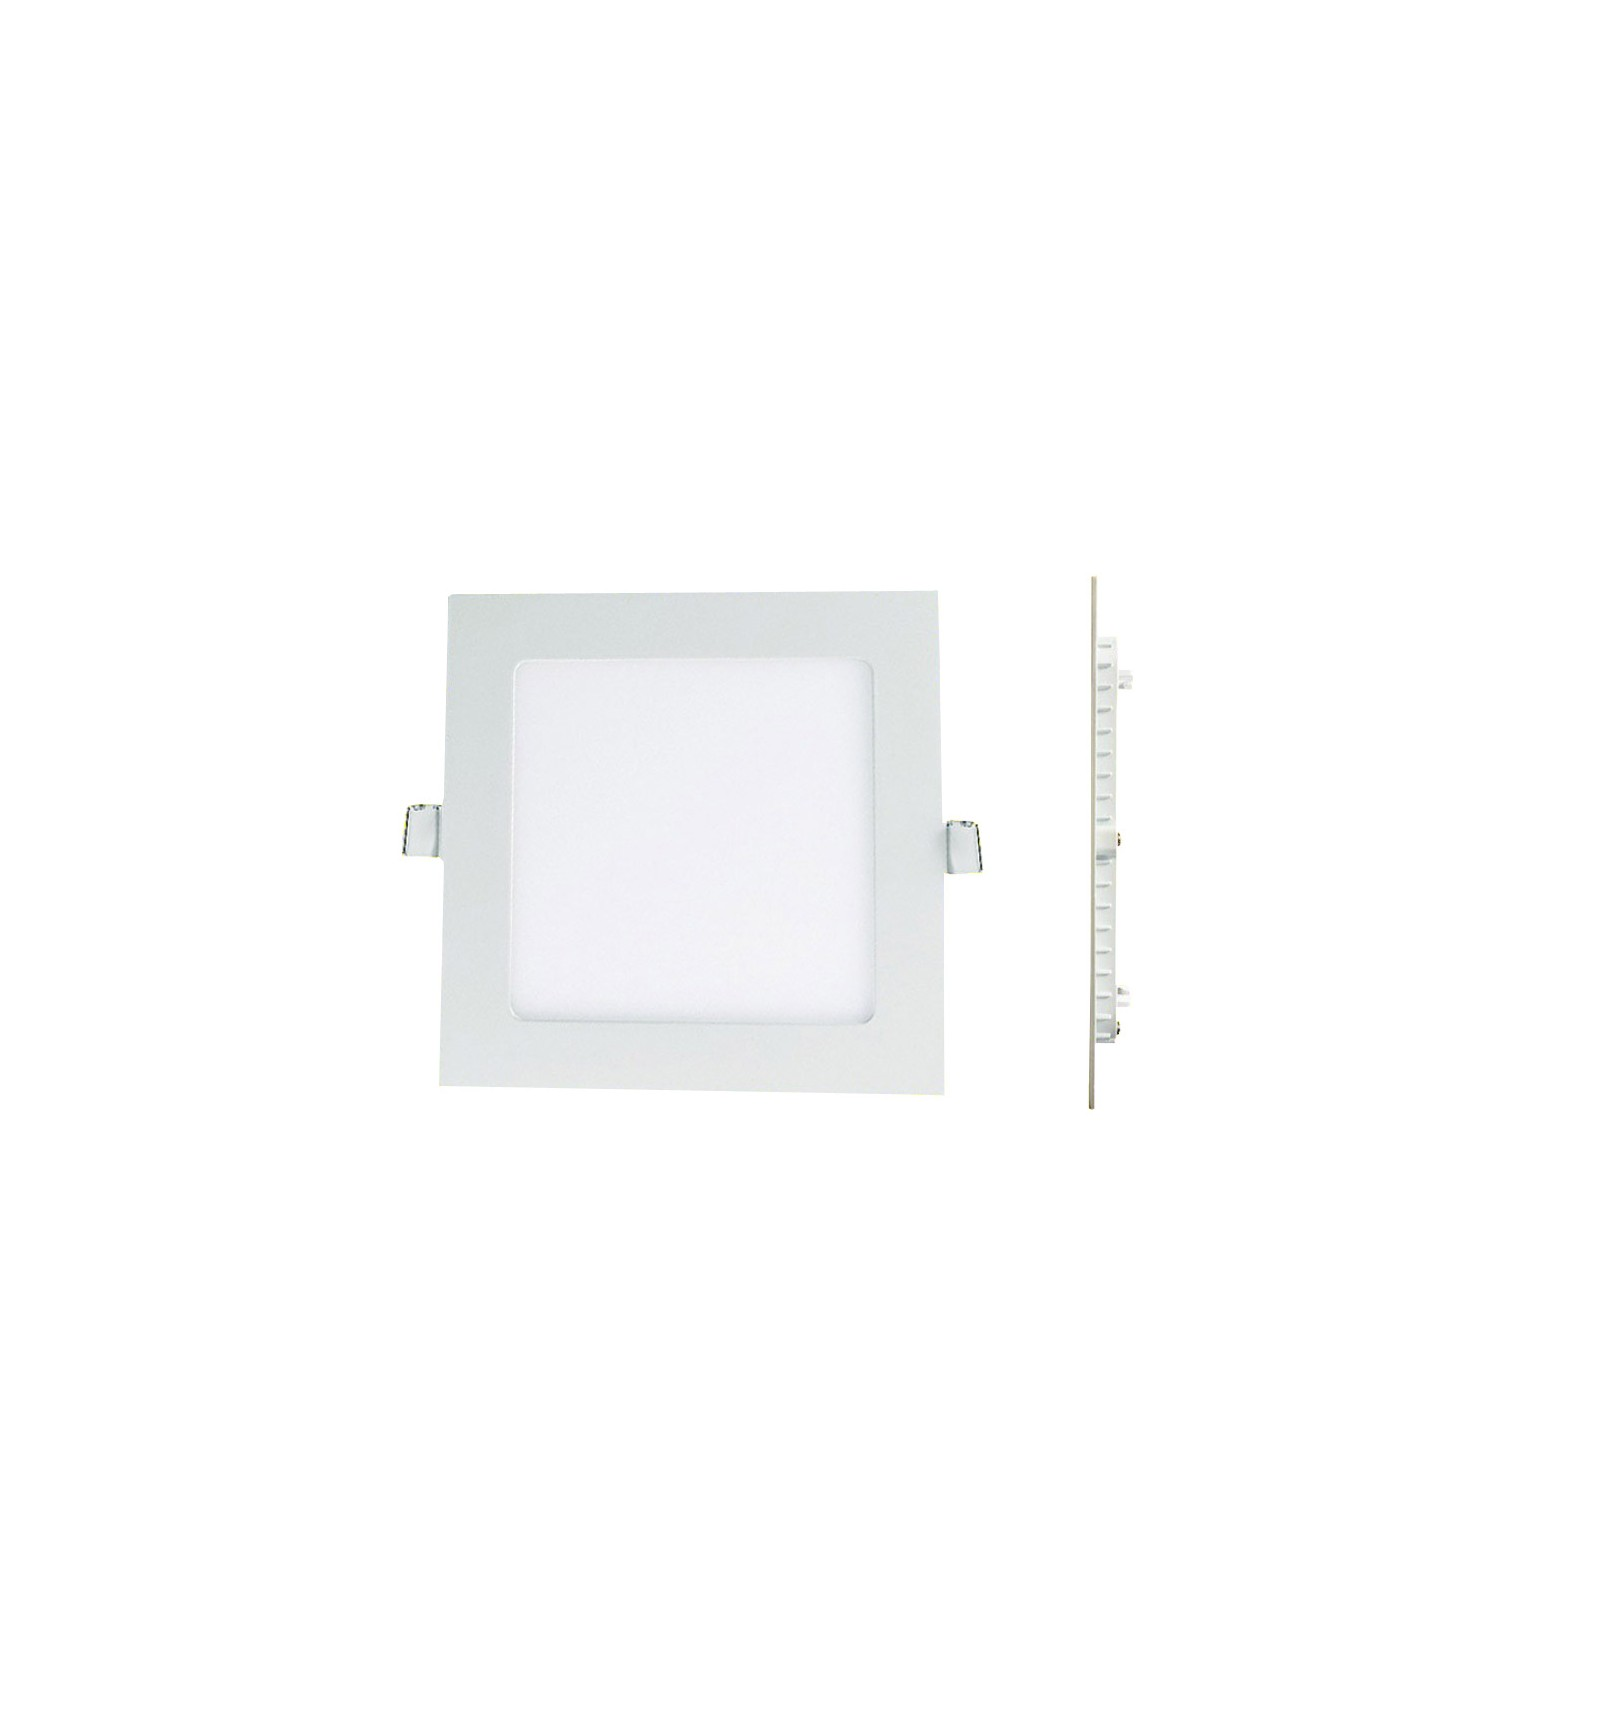 spot encastrable led carre downlight panel extra plat 25w blanc chaud. Black Bedroom Furniture Sets. Home Design Ideas